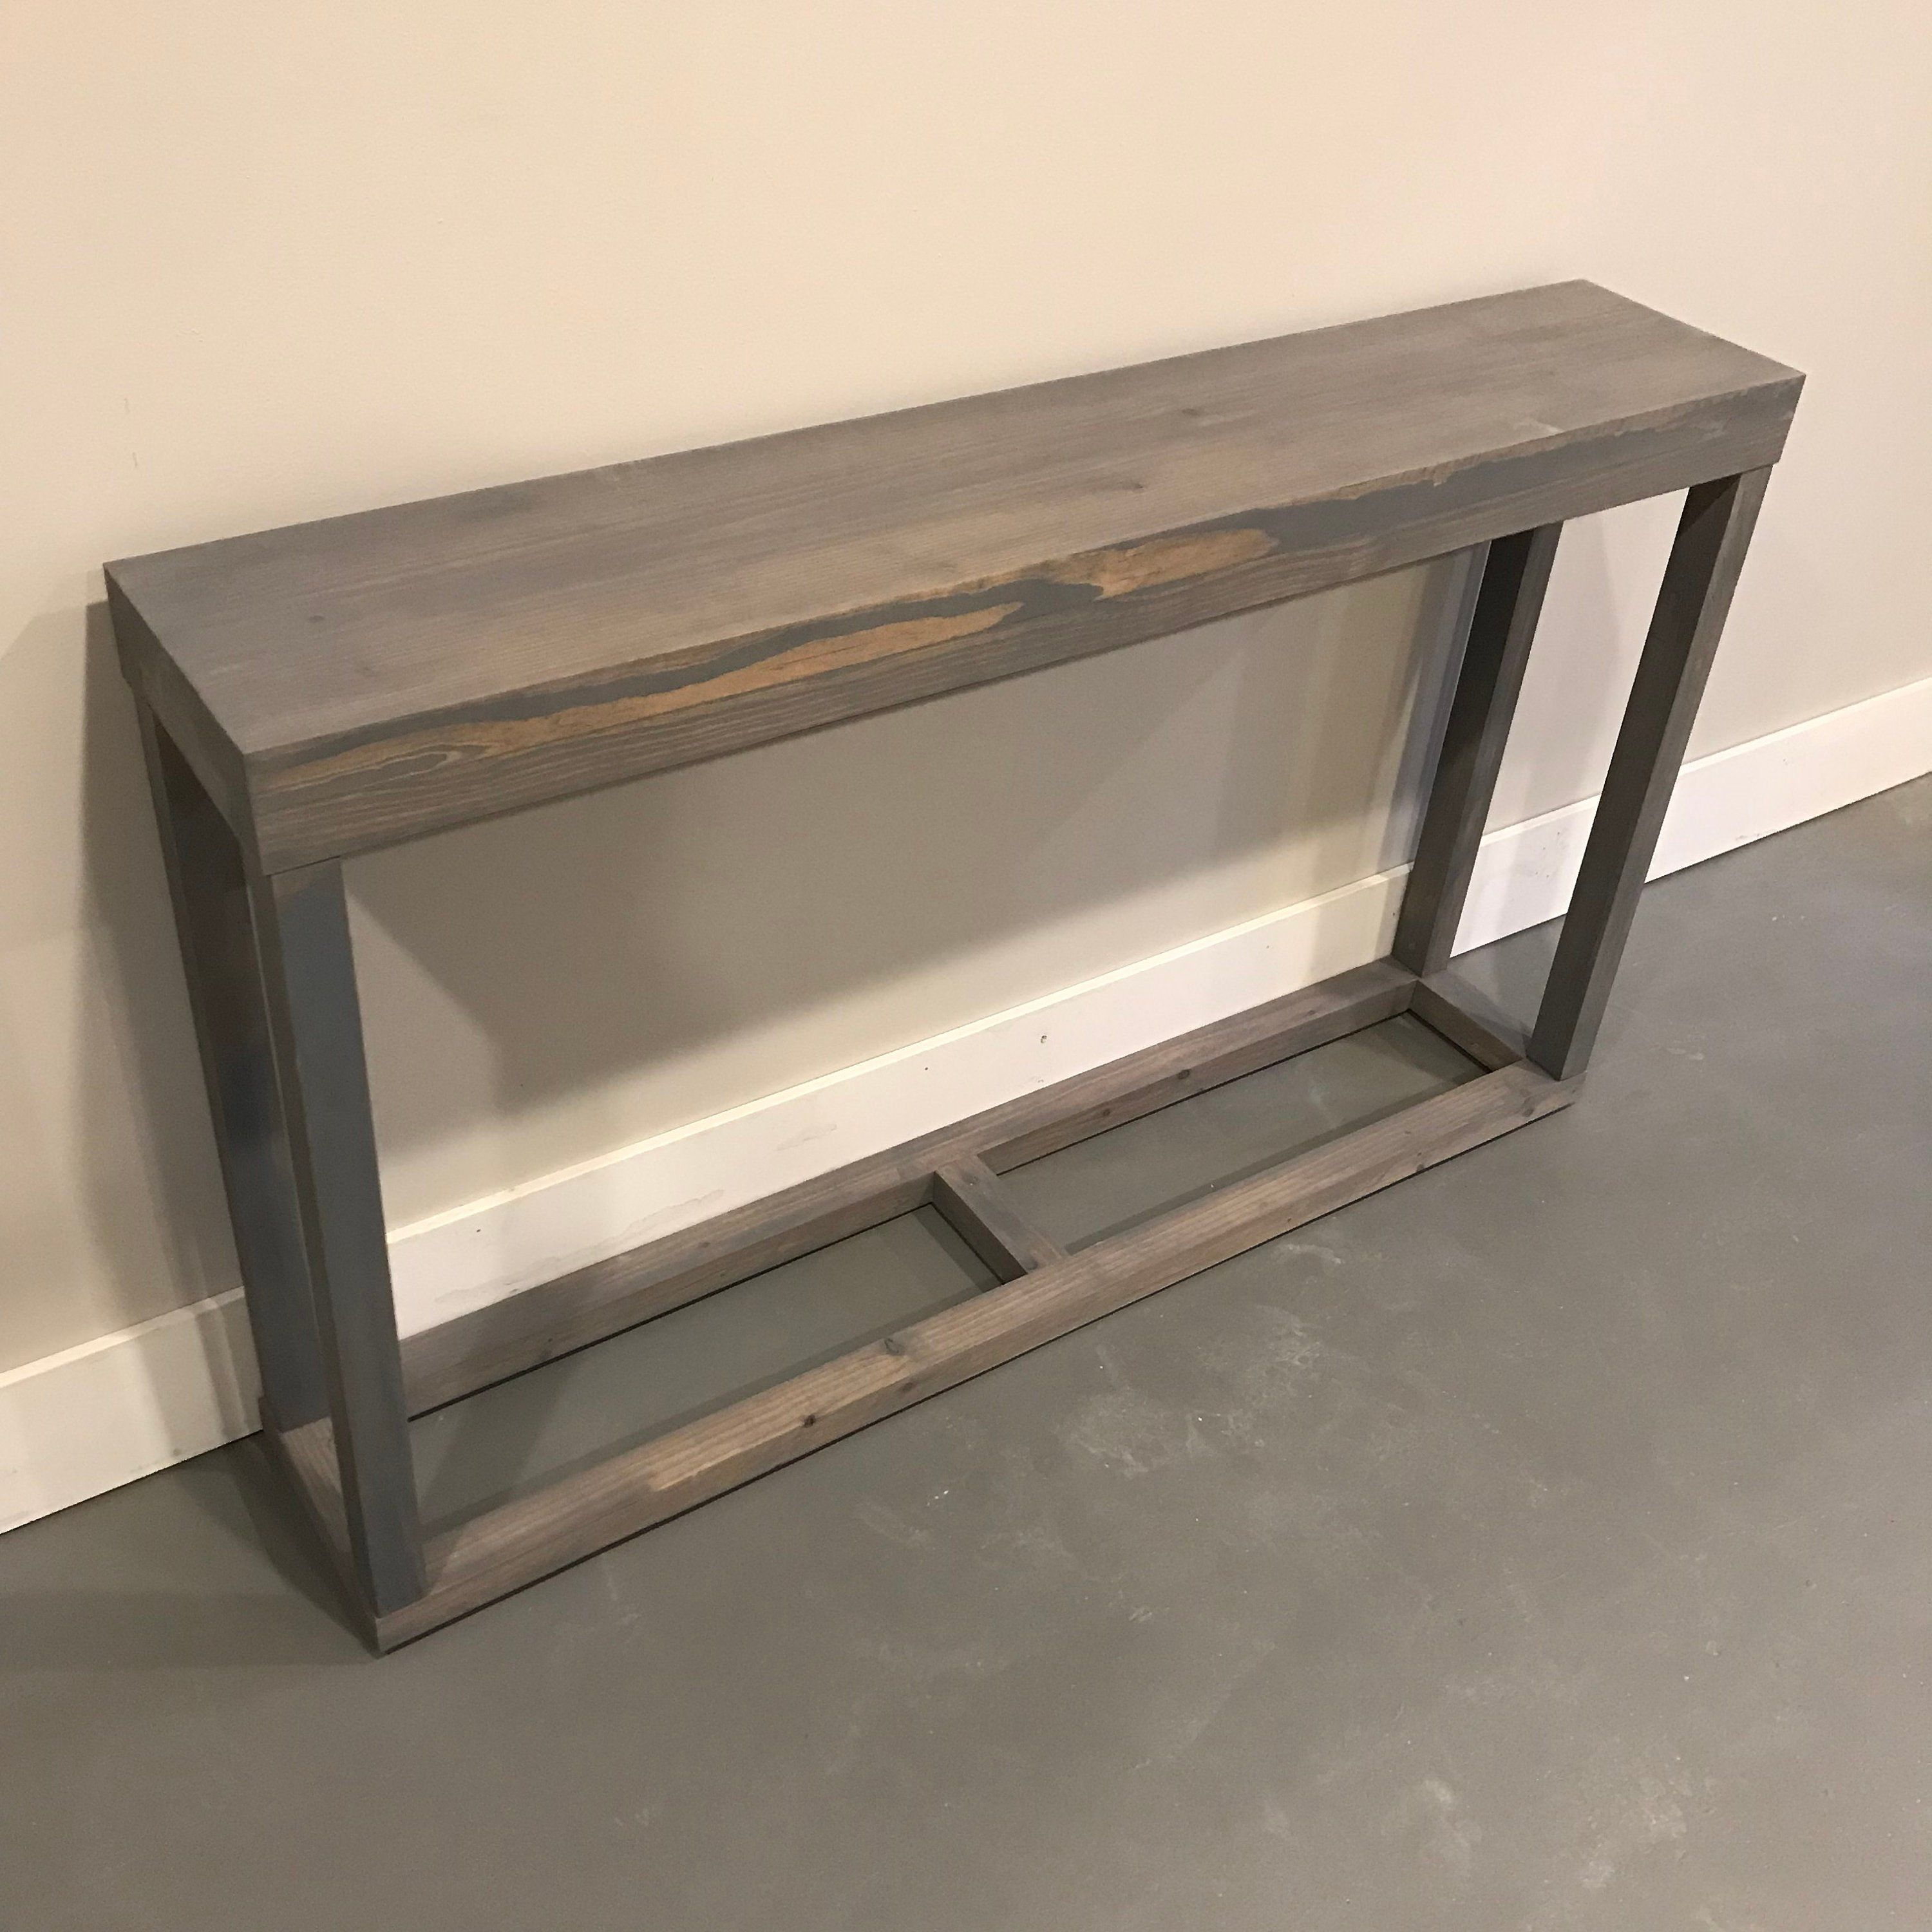 Long Console Table Narrow Console Table Long Entryway Table Behind Couch Table Behind Sofa Table Rustic Industrial With Images Behind Sofa Table Table Behind Couch Couch Table